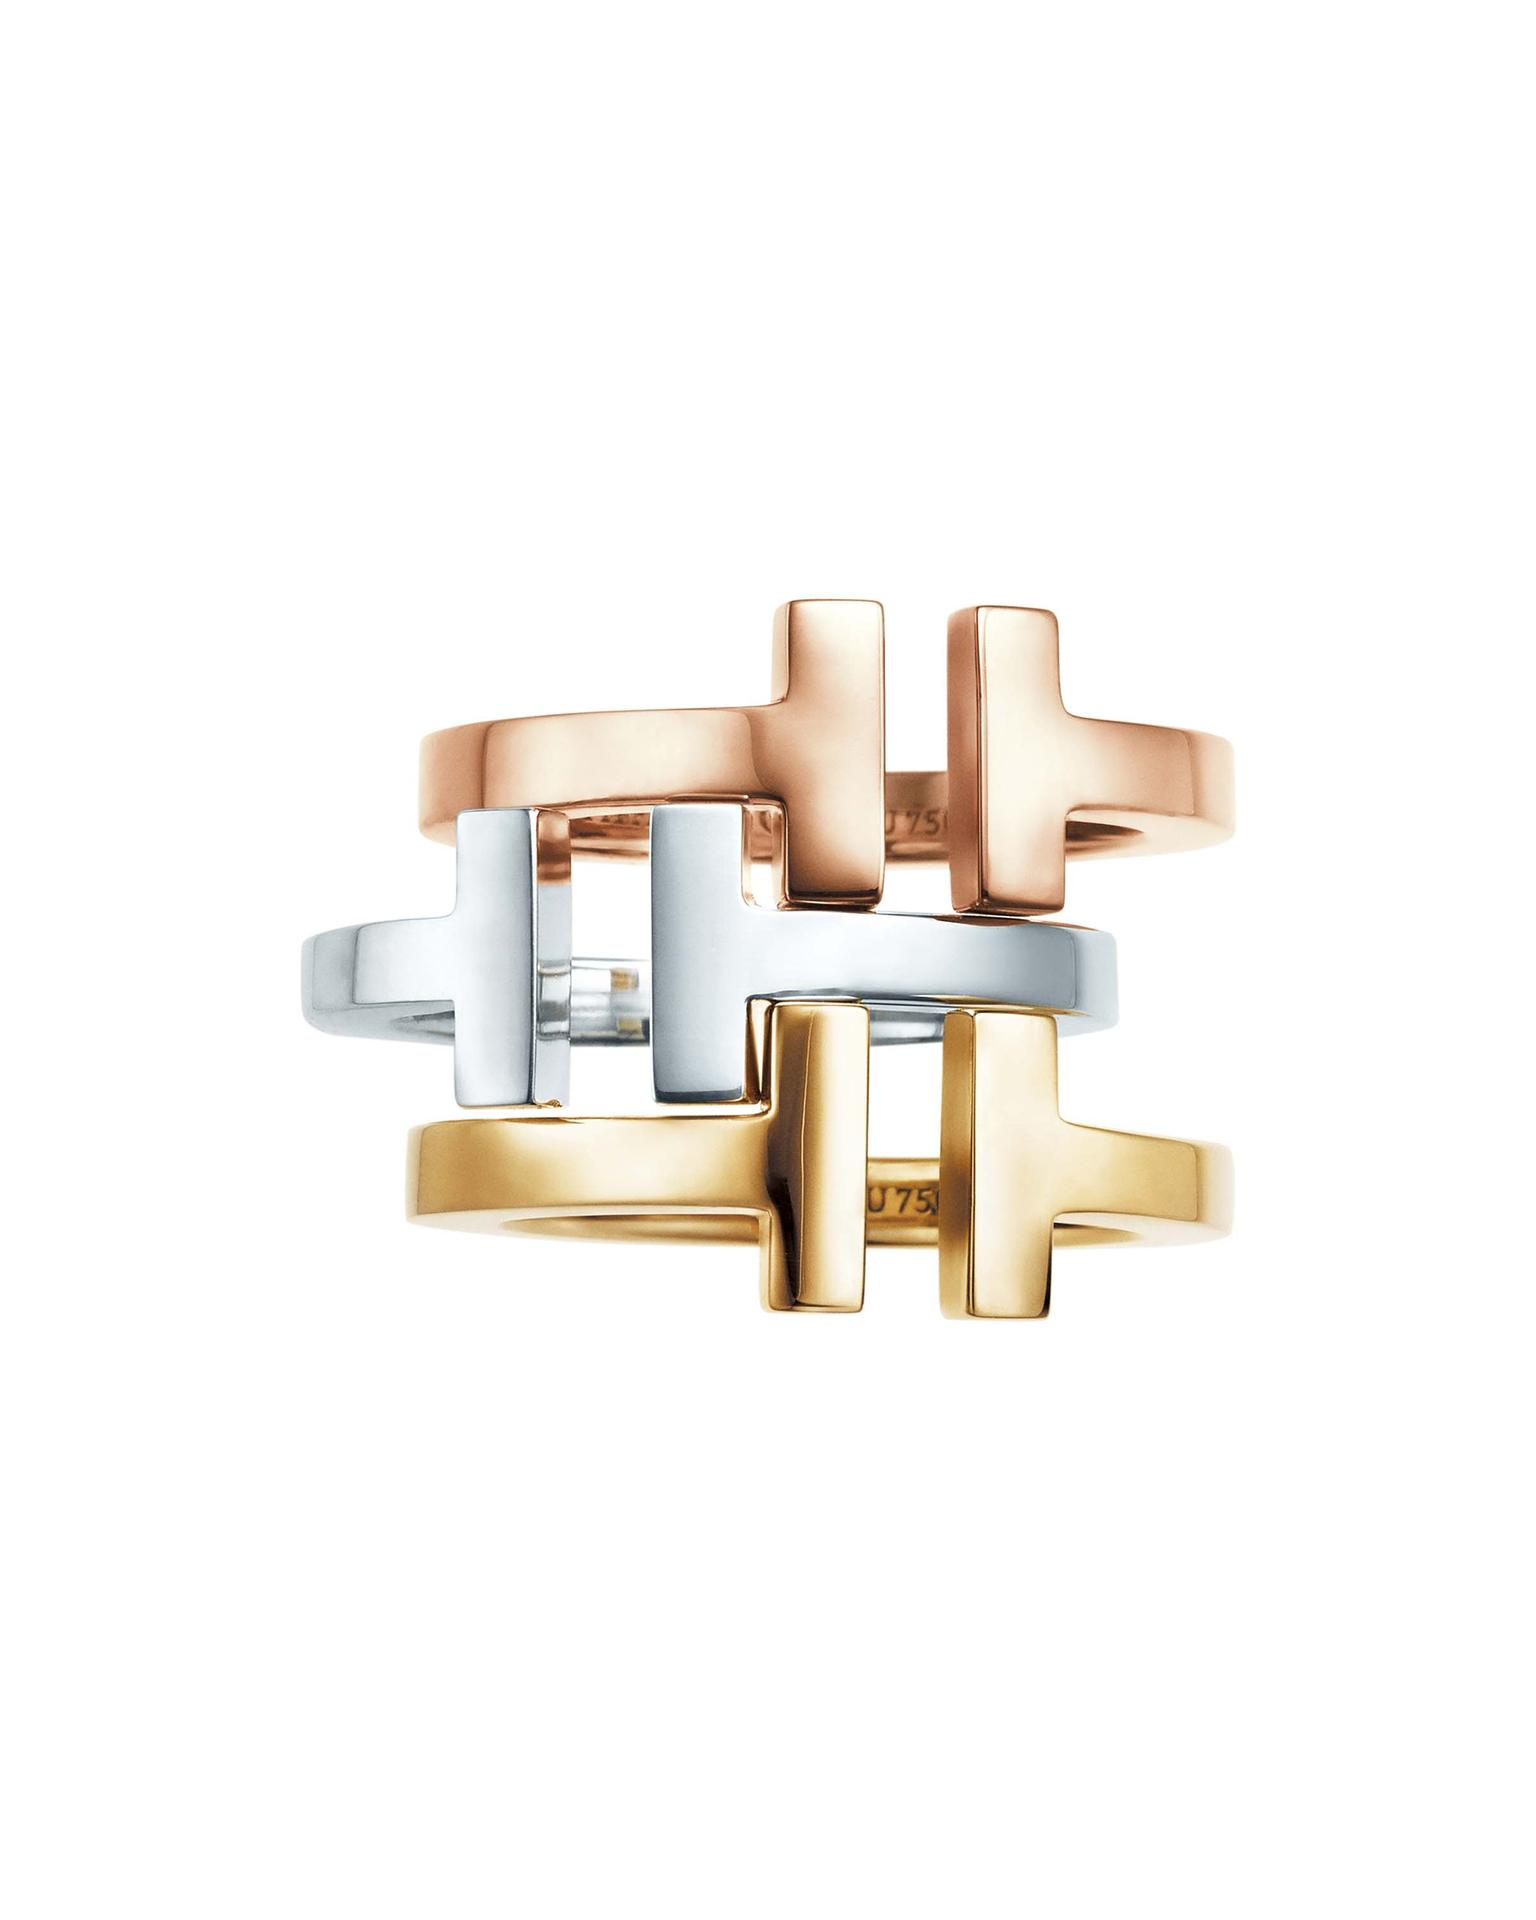 Tiffany T square rings in rose and yellow gold from £975 and silver from £300.